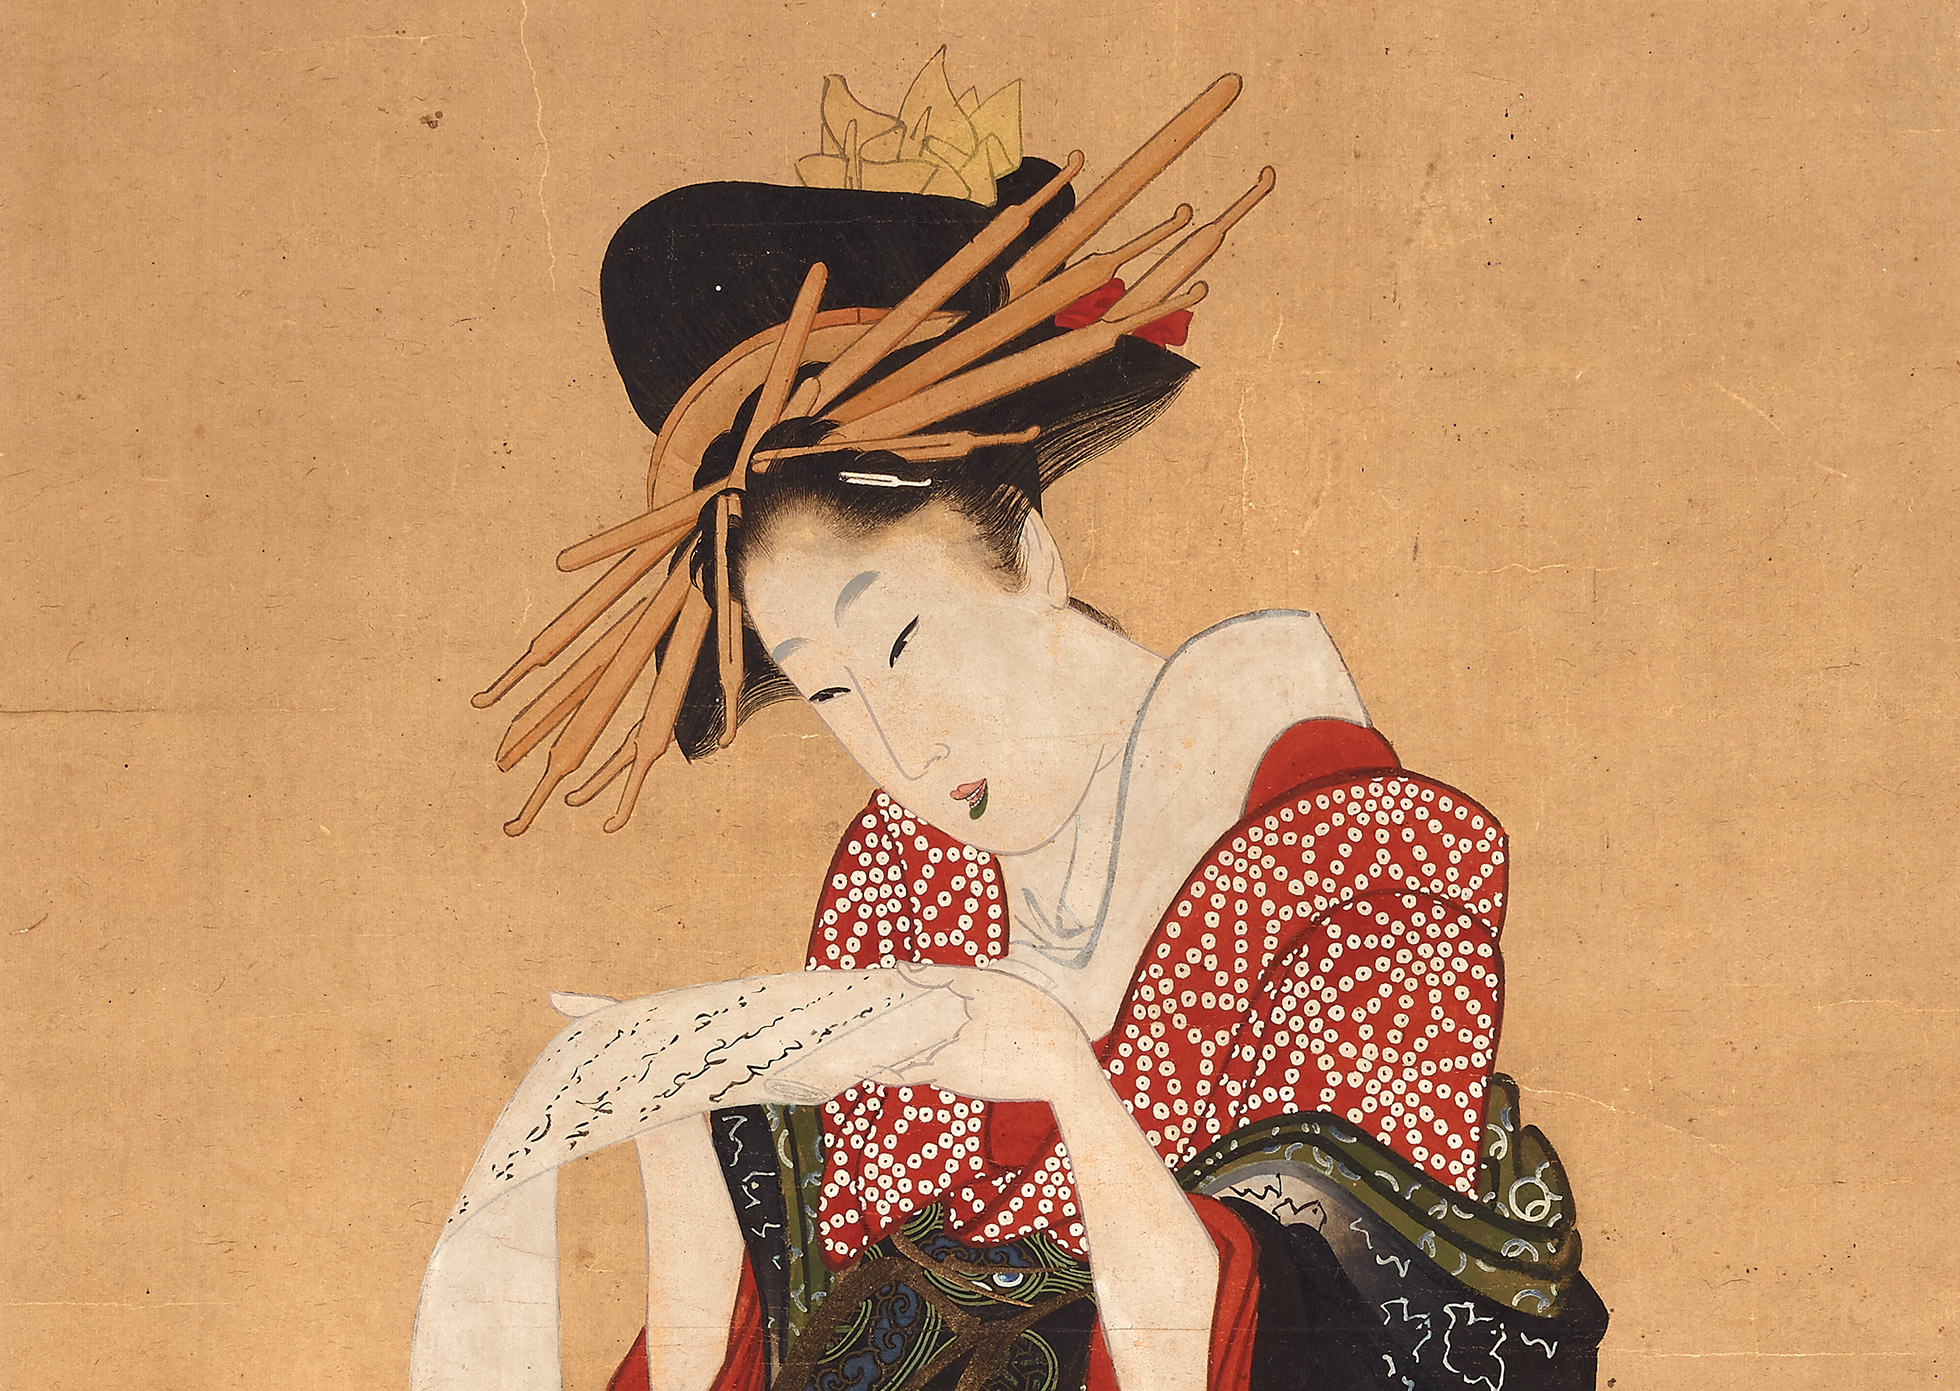 Apologise, but Genuine woodprint painting of geishas confirm. All